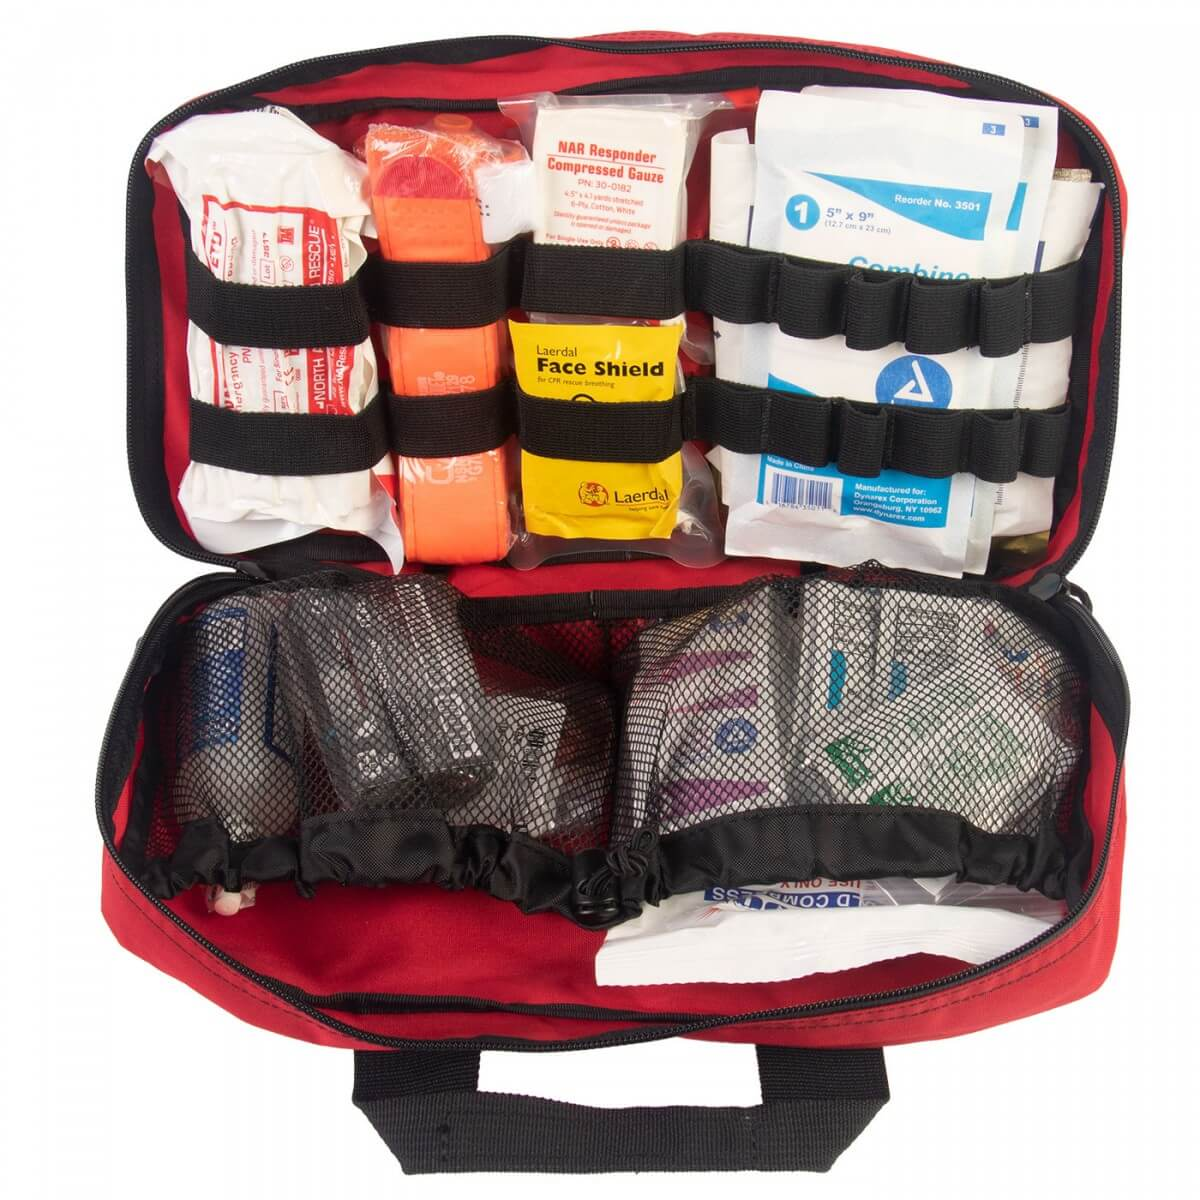 Most First aid kits do not carry tourniquets or other bleeding control equipment, but ours does.